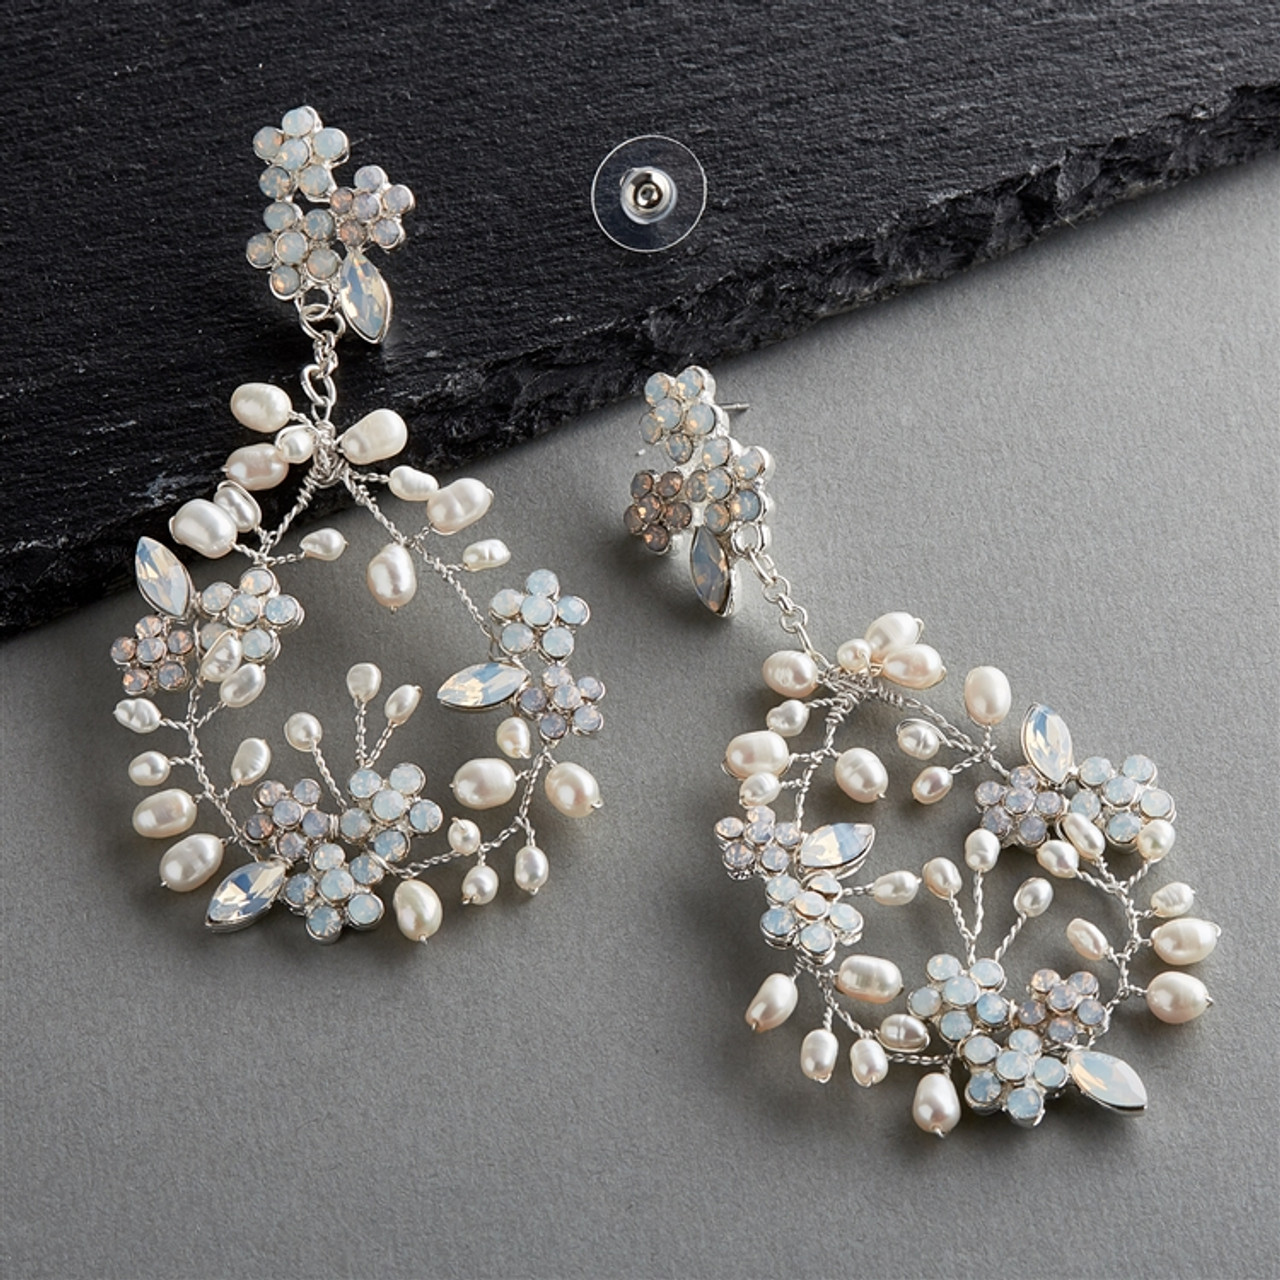 Hand-made Bridal Statement Earrings with Opals and Freshwater Pearls 4640E-OP-I-S